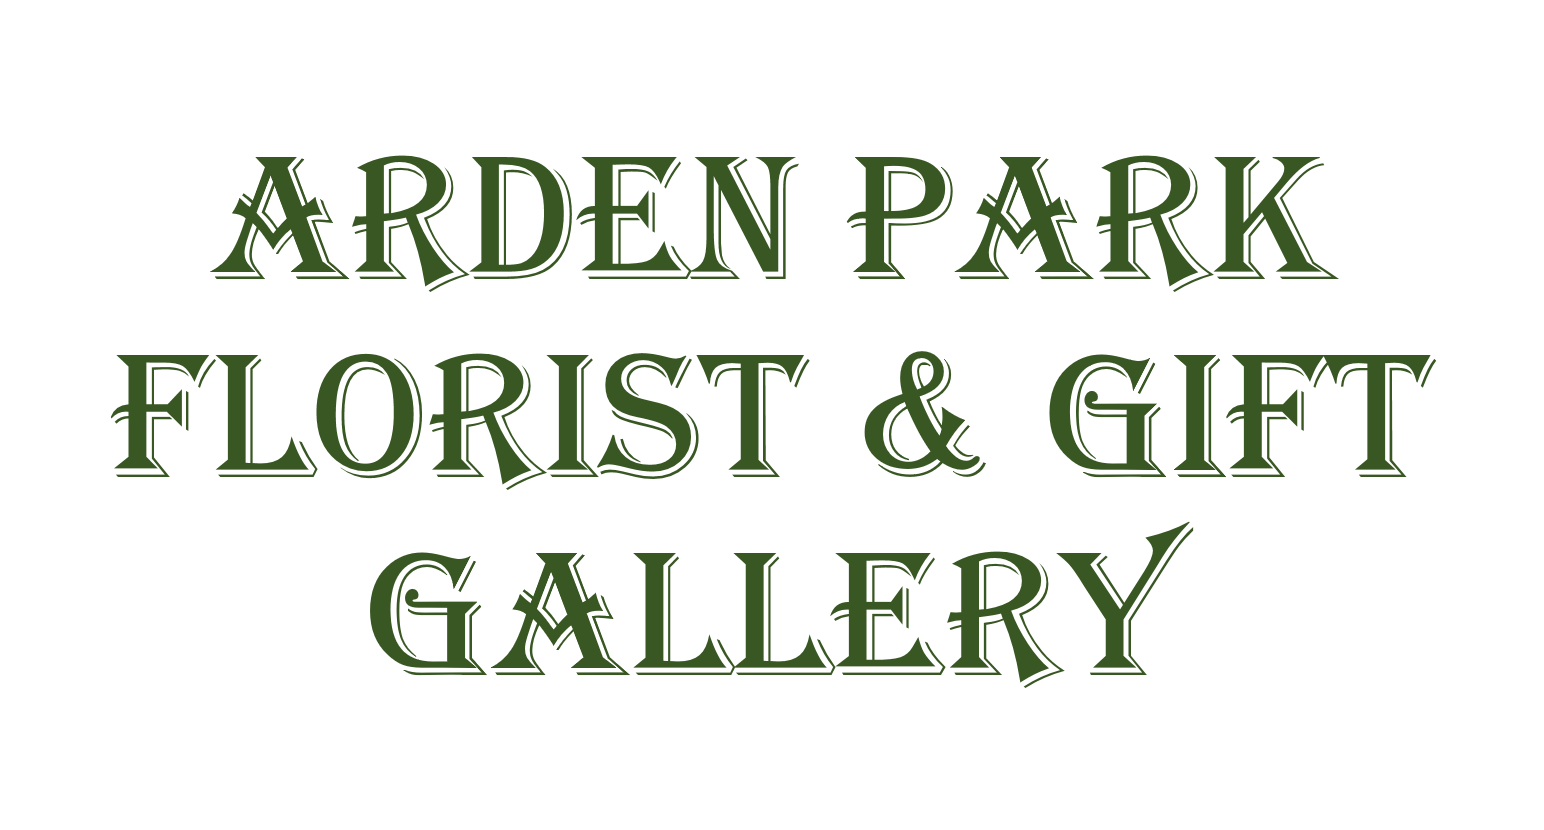 Sacramento florist flower delivery by arden park florist gift sacramento florist flower delivery by arden park florist gift gallery izmirmasajfo